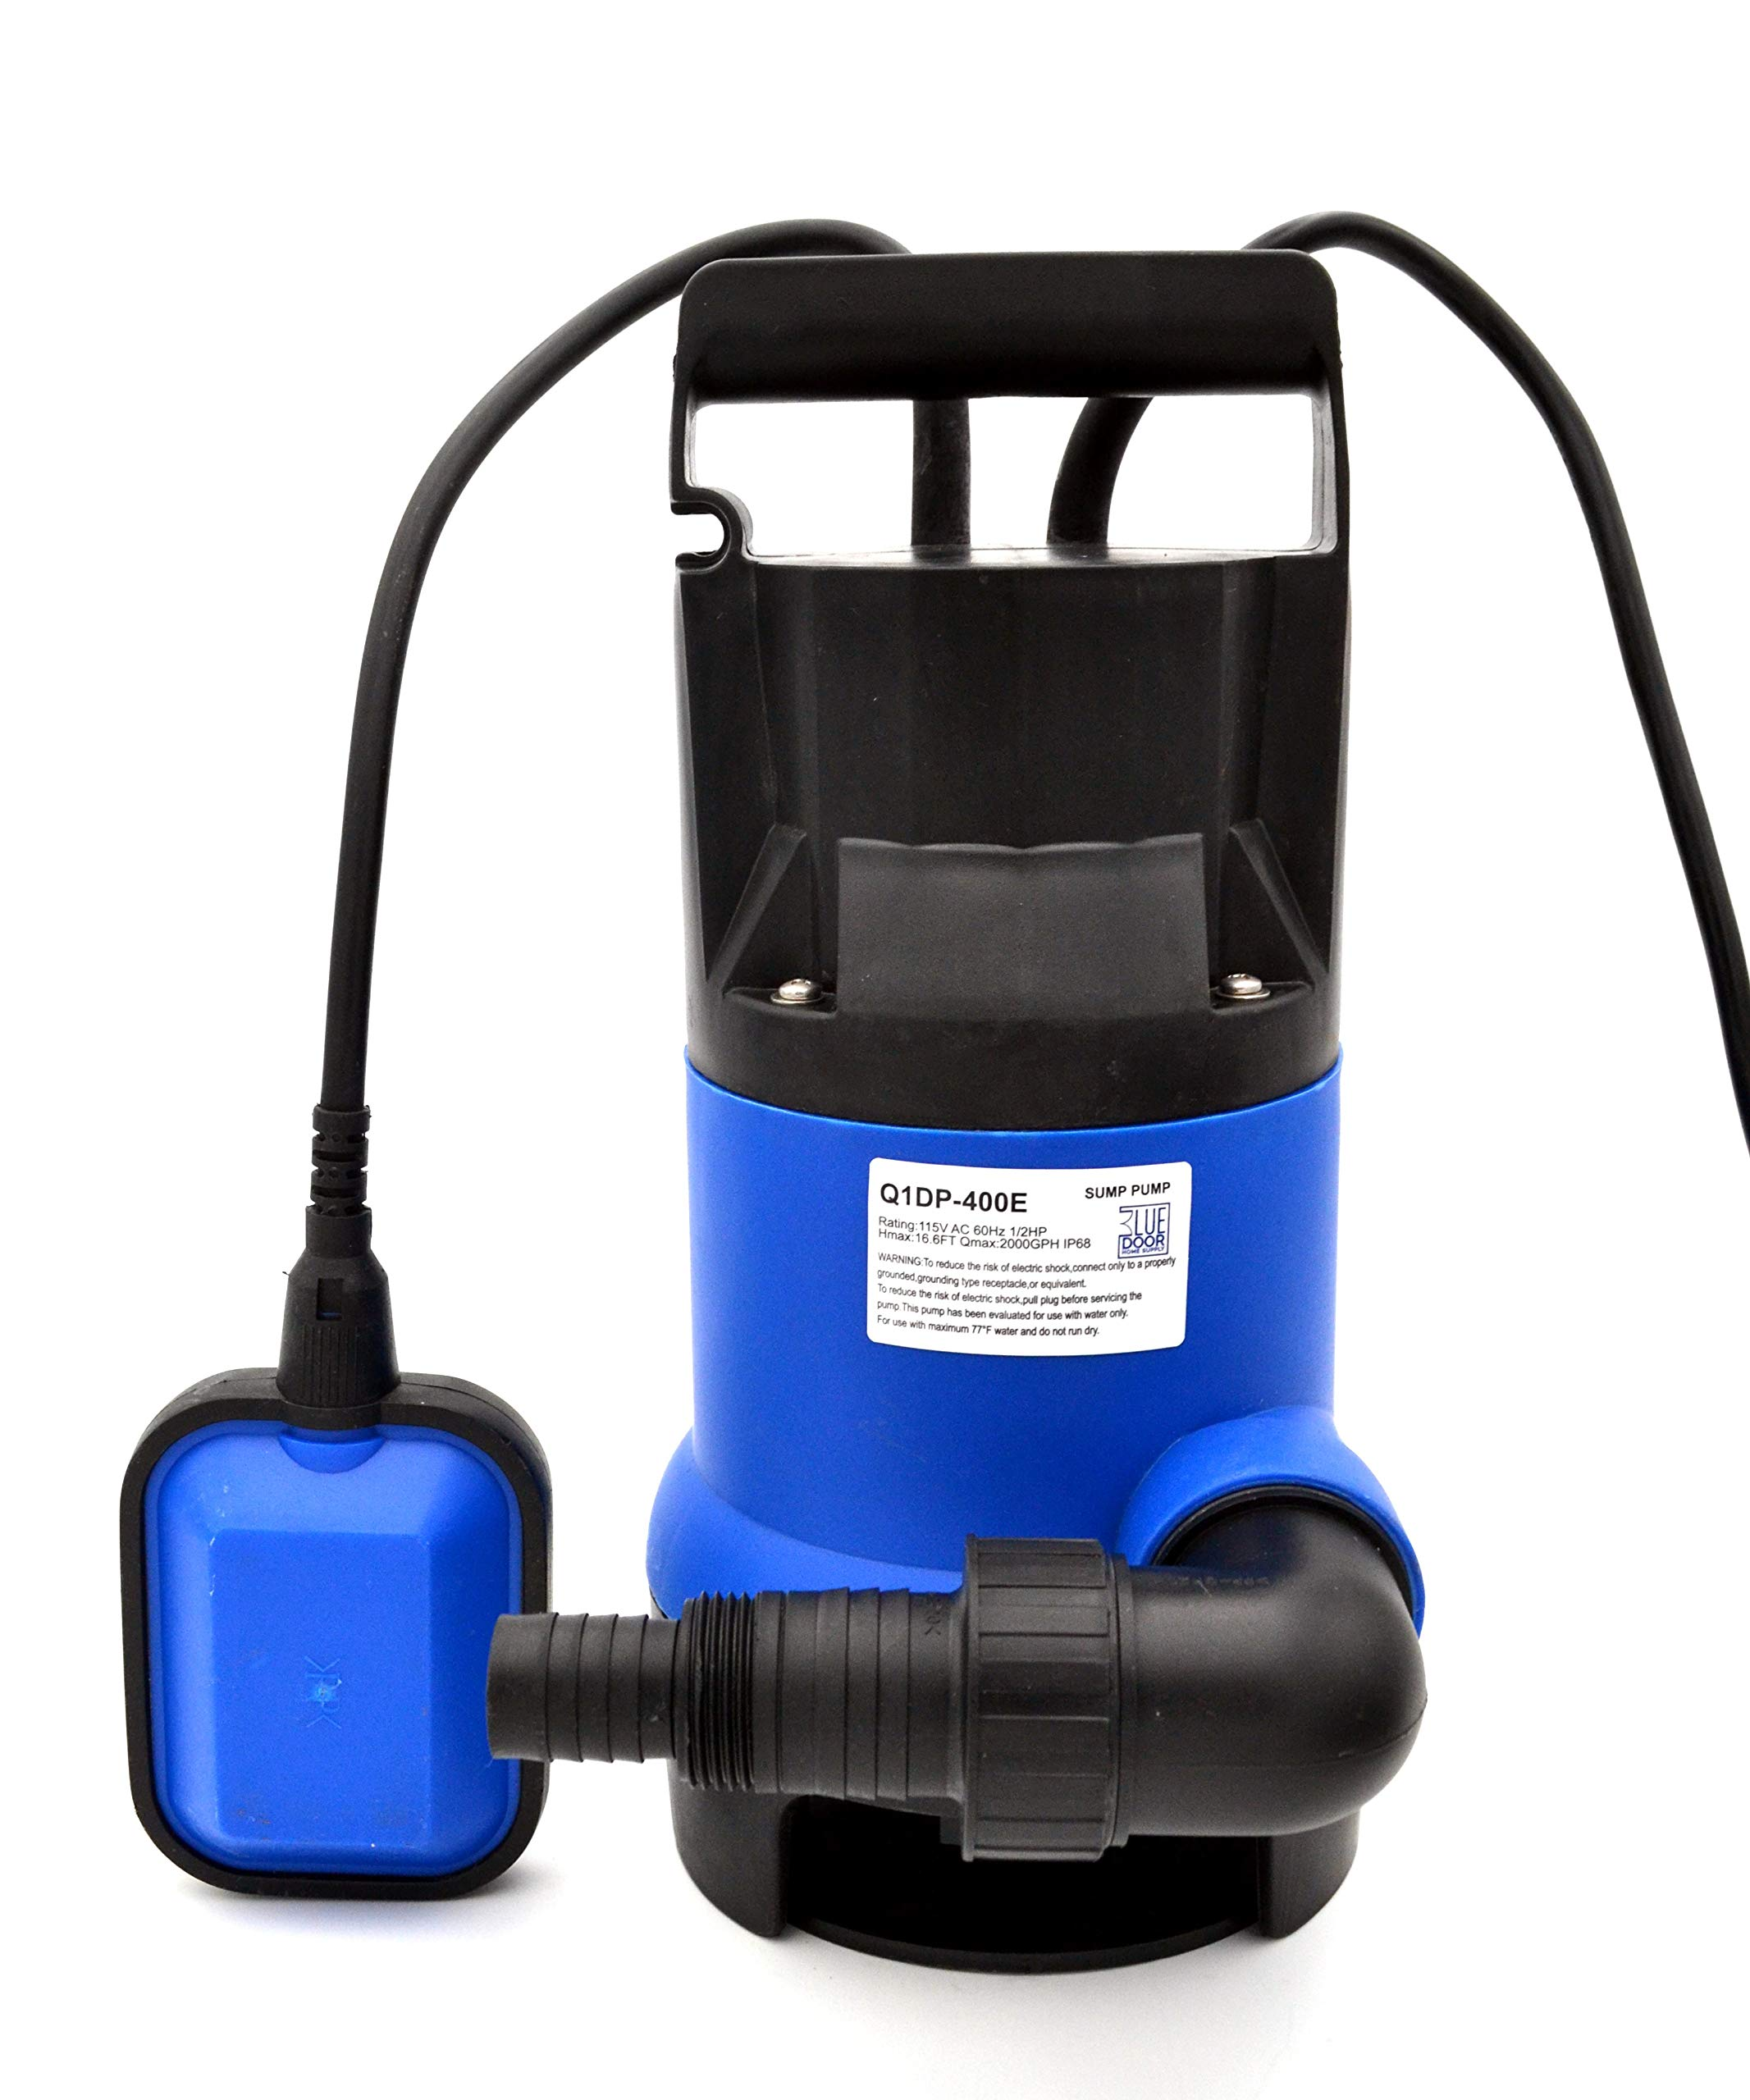 Submersible Clean/Dirty Water Sump Pump, Great for Outside Swimming Pools, Ponds, or Indoor Basements and Floods | 1/2 HP | Utility by BD Supply